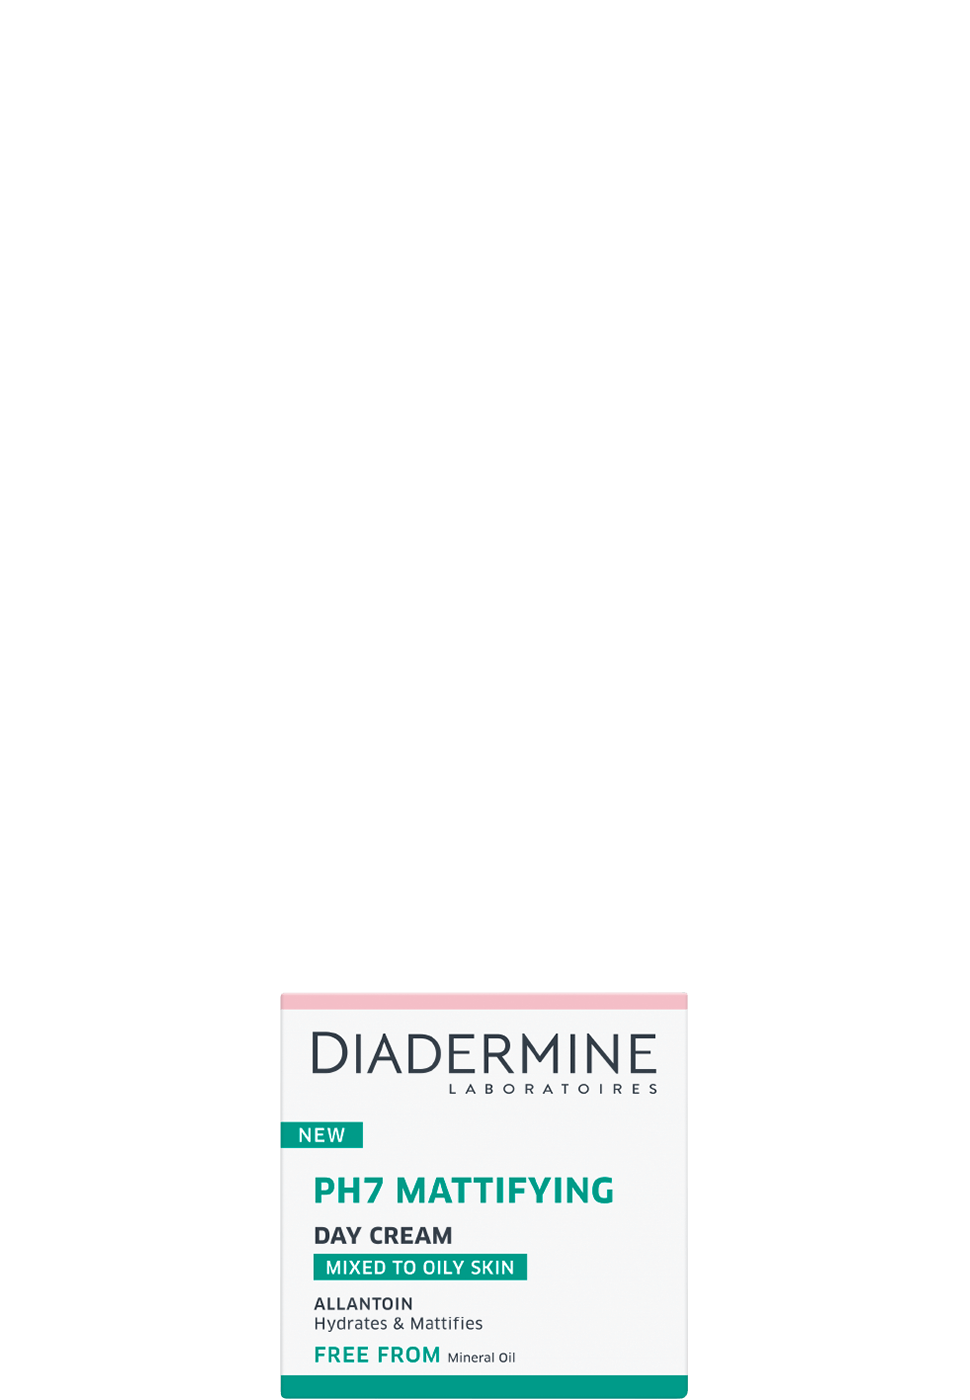 diadermine_com_essentials_ph7_mattifying_day_cream_970x1400